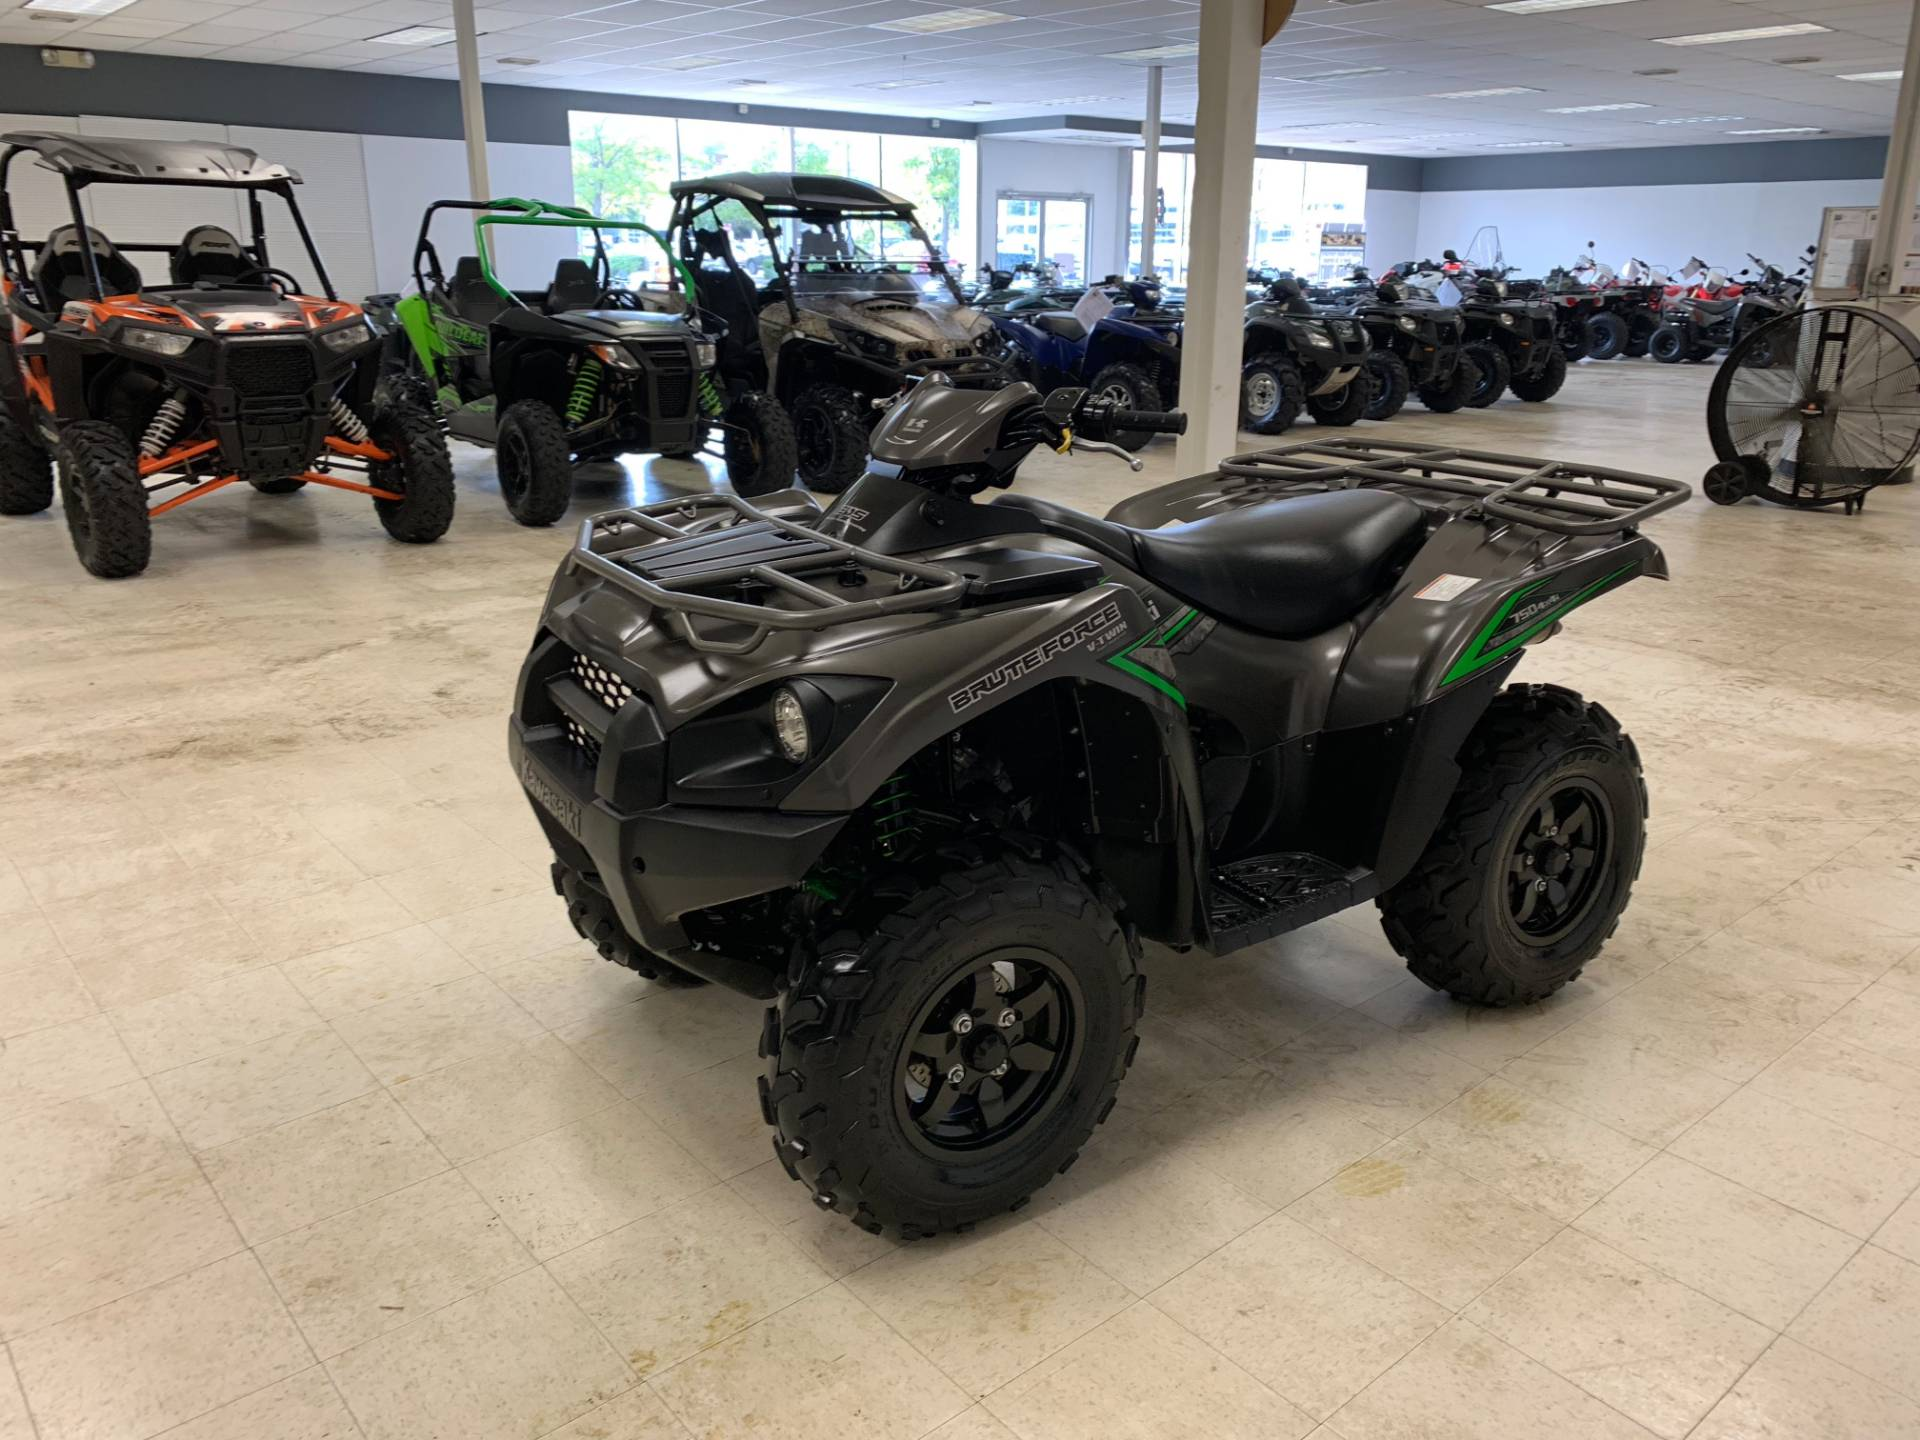 2017 Kawasaki Brute Force 750 4x4i EPS 6